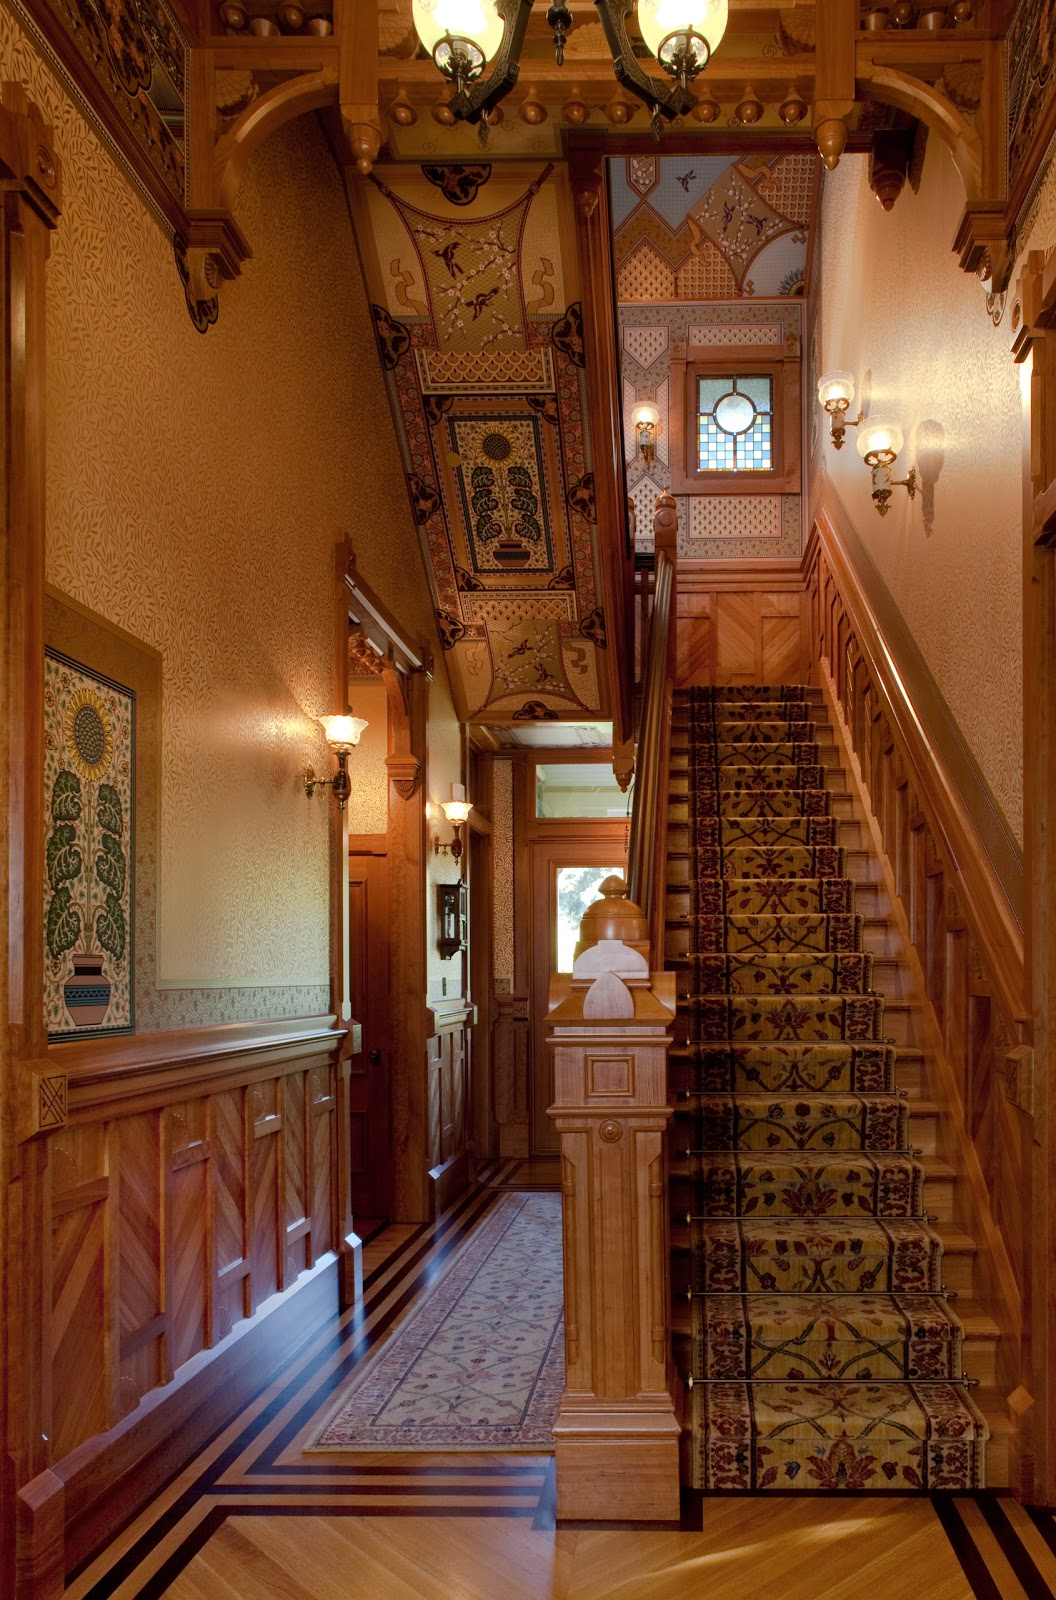 Victorian House Interior Designs In 2019: Artistic License News: McDonald Mansion- The Formal